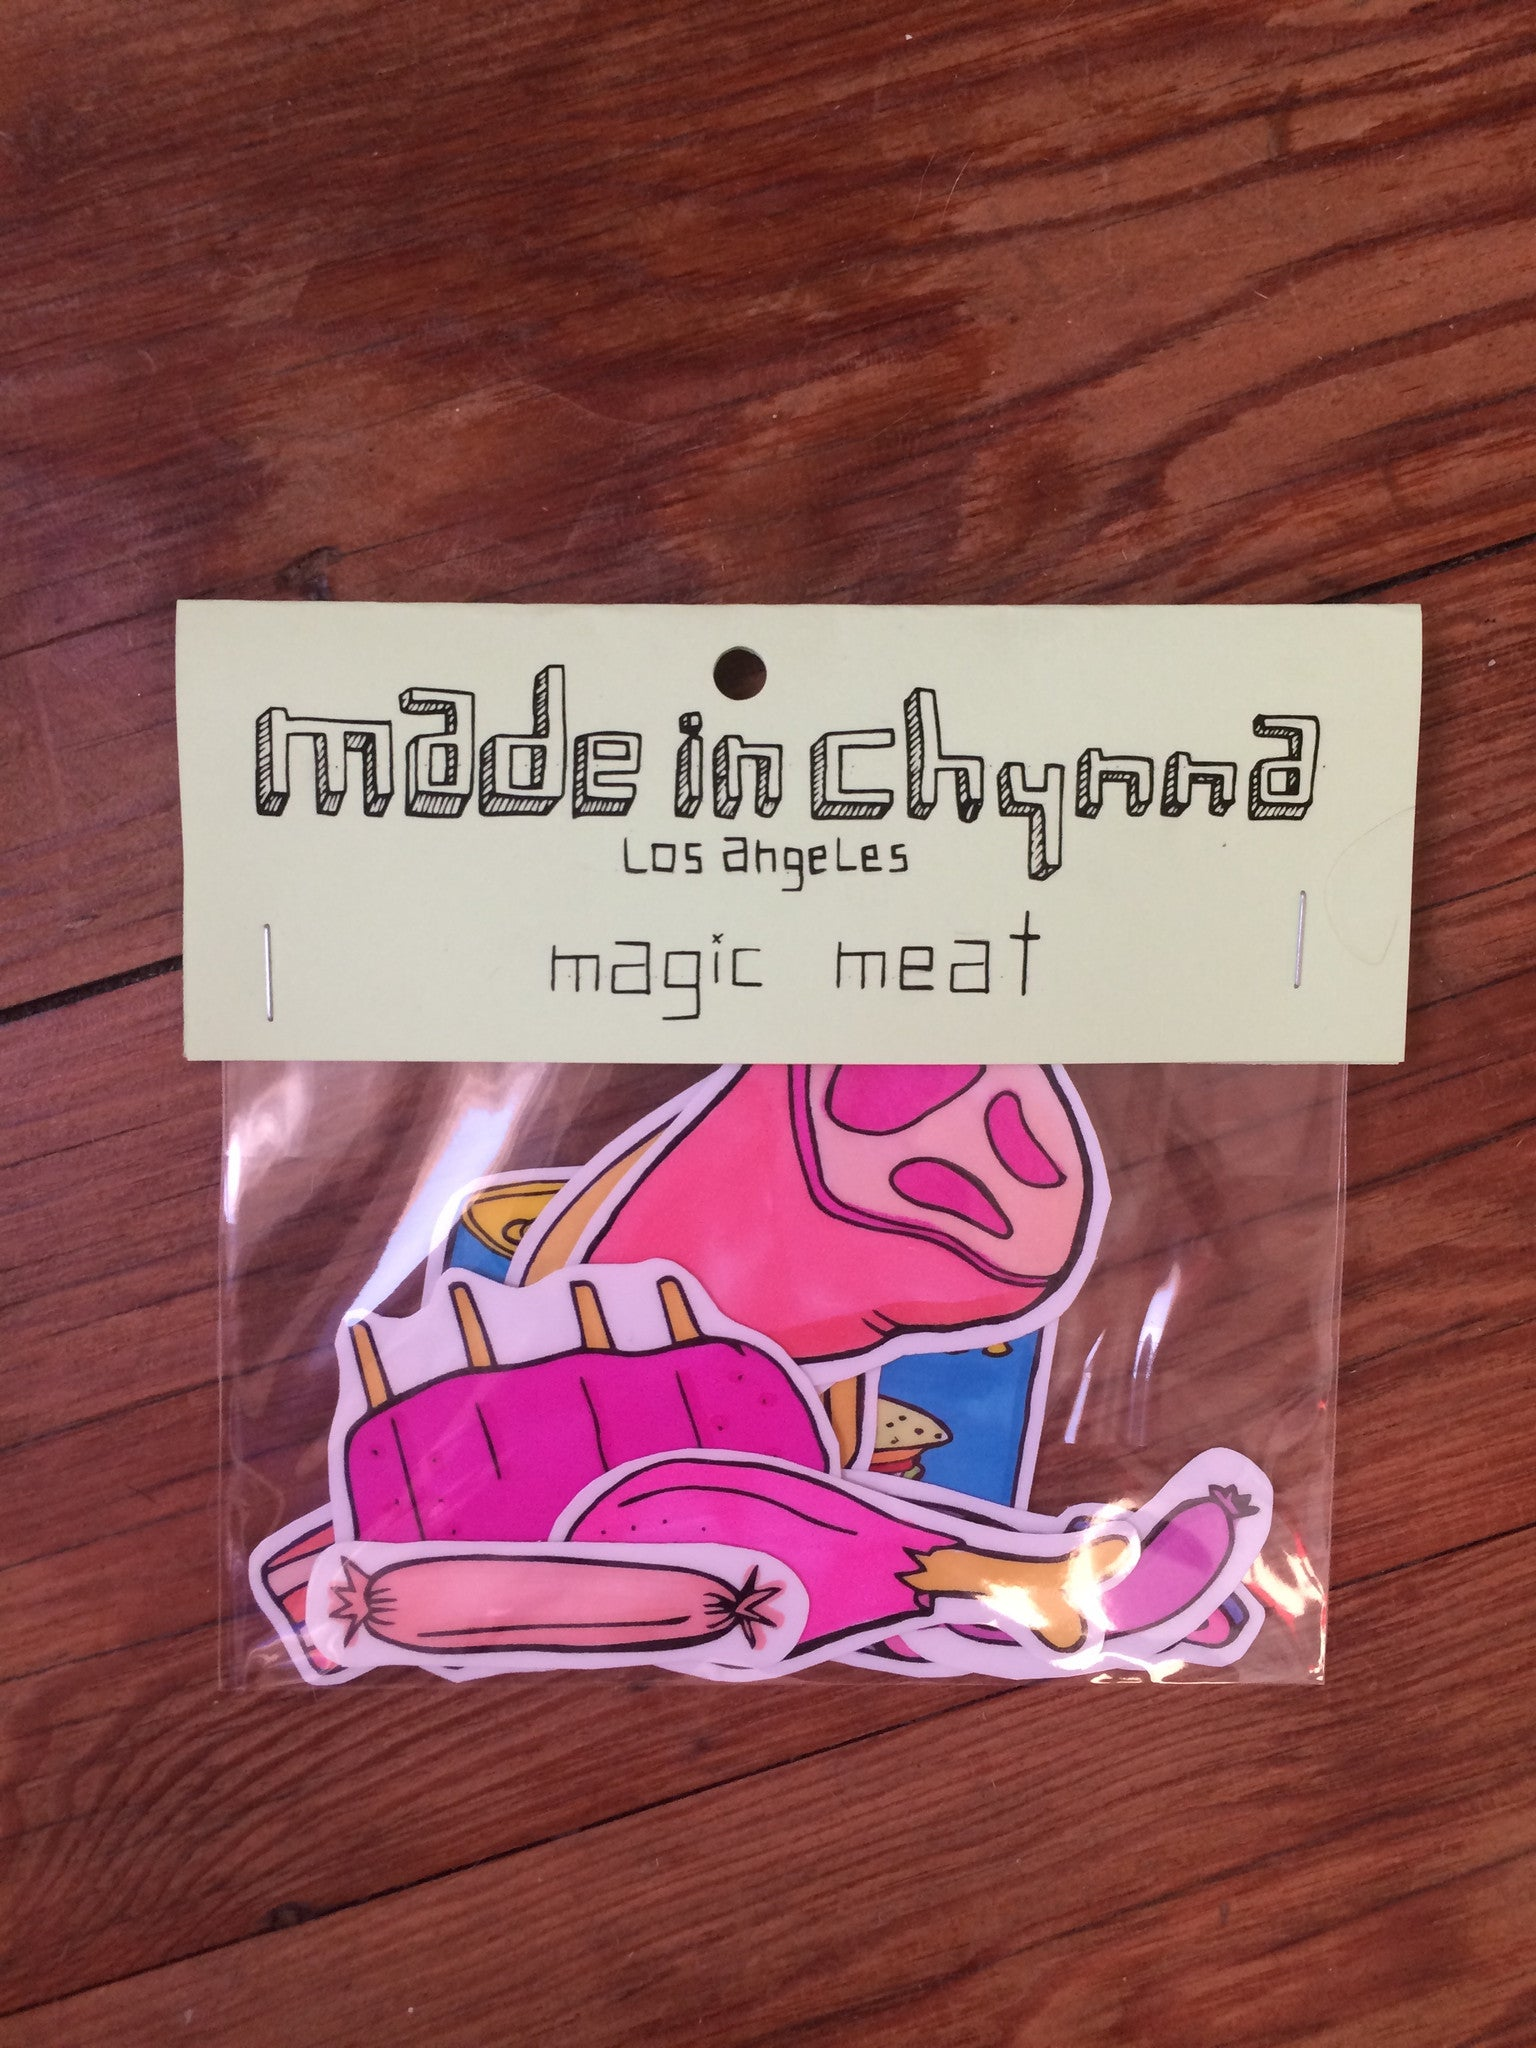 Magic meat stickers